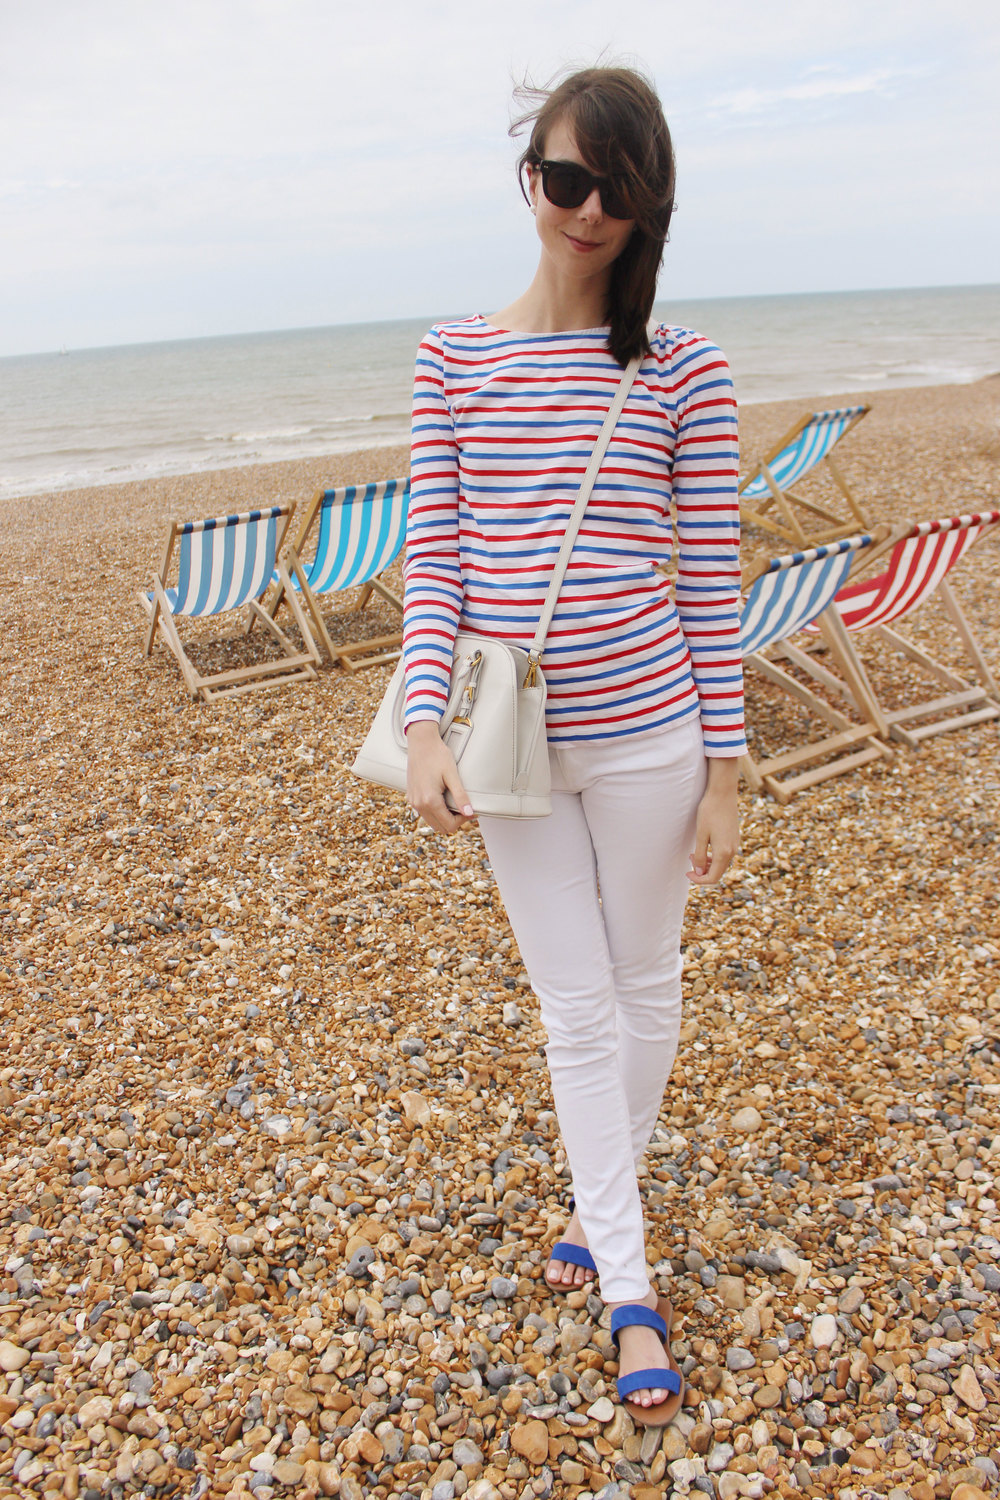 Braving the wind in brighton, wearing white red, white and blue.